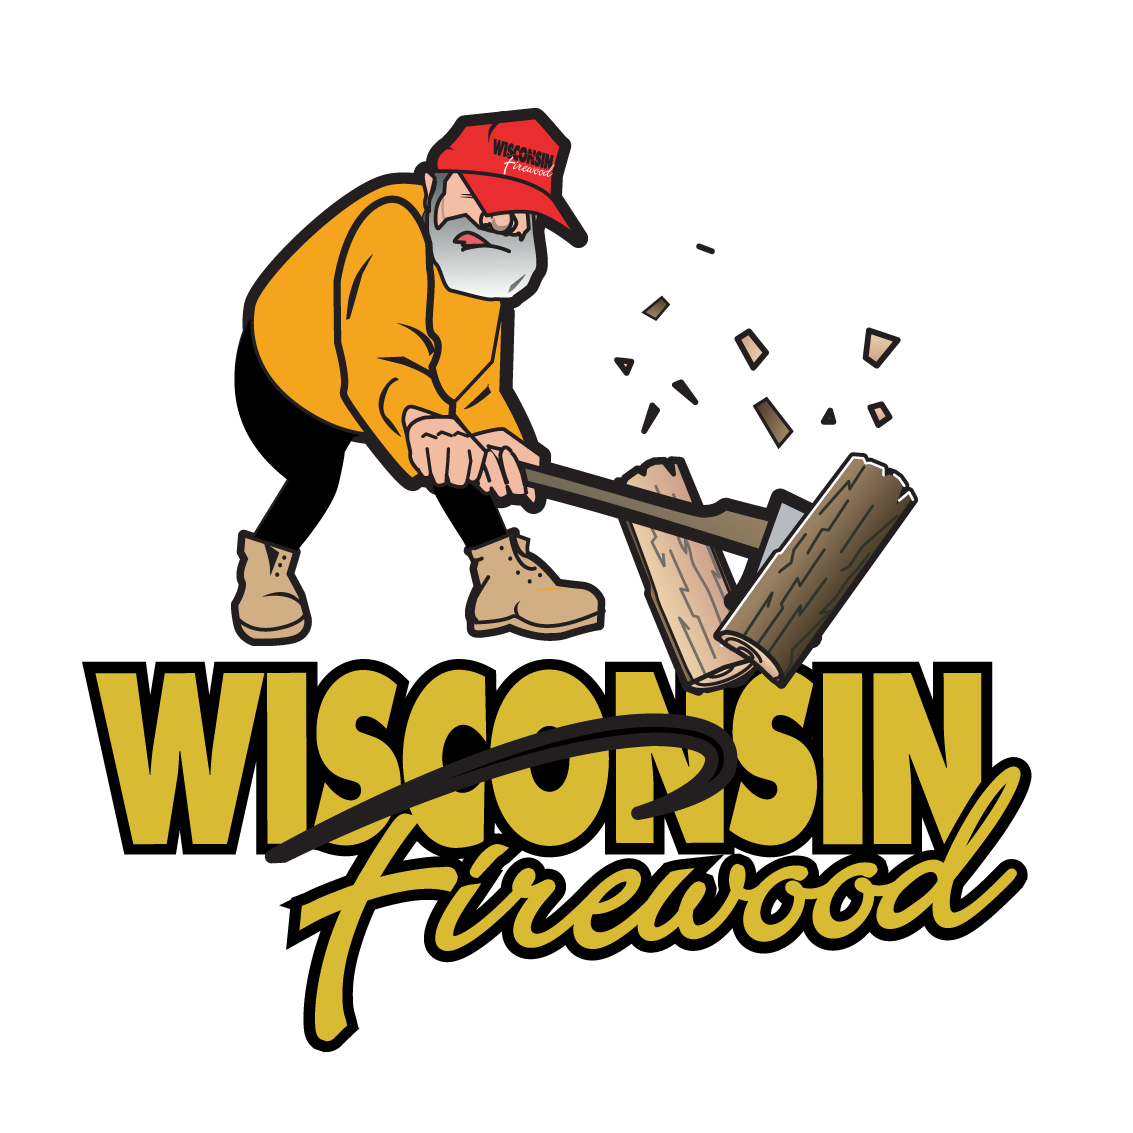 Wisconsin Firewood Company image 1